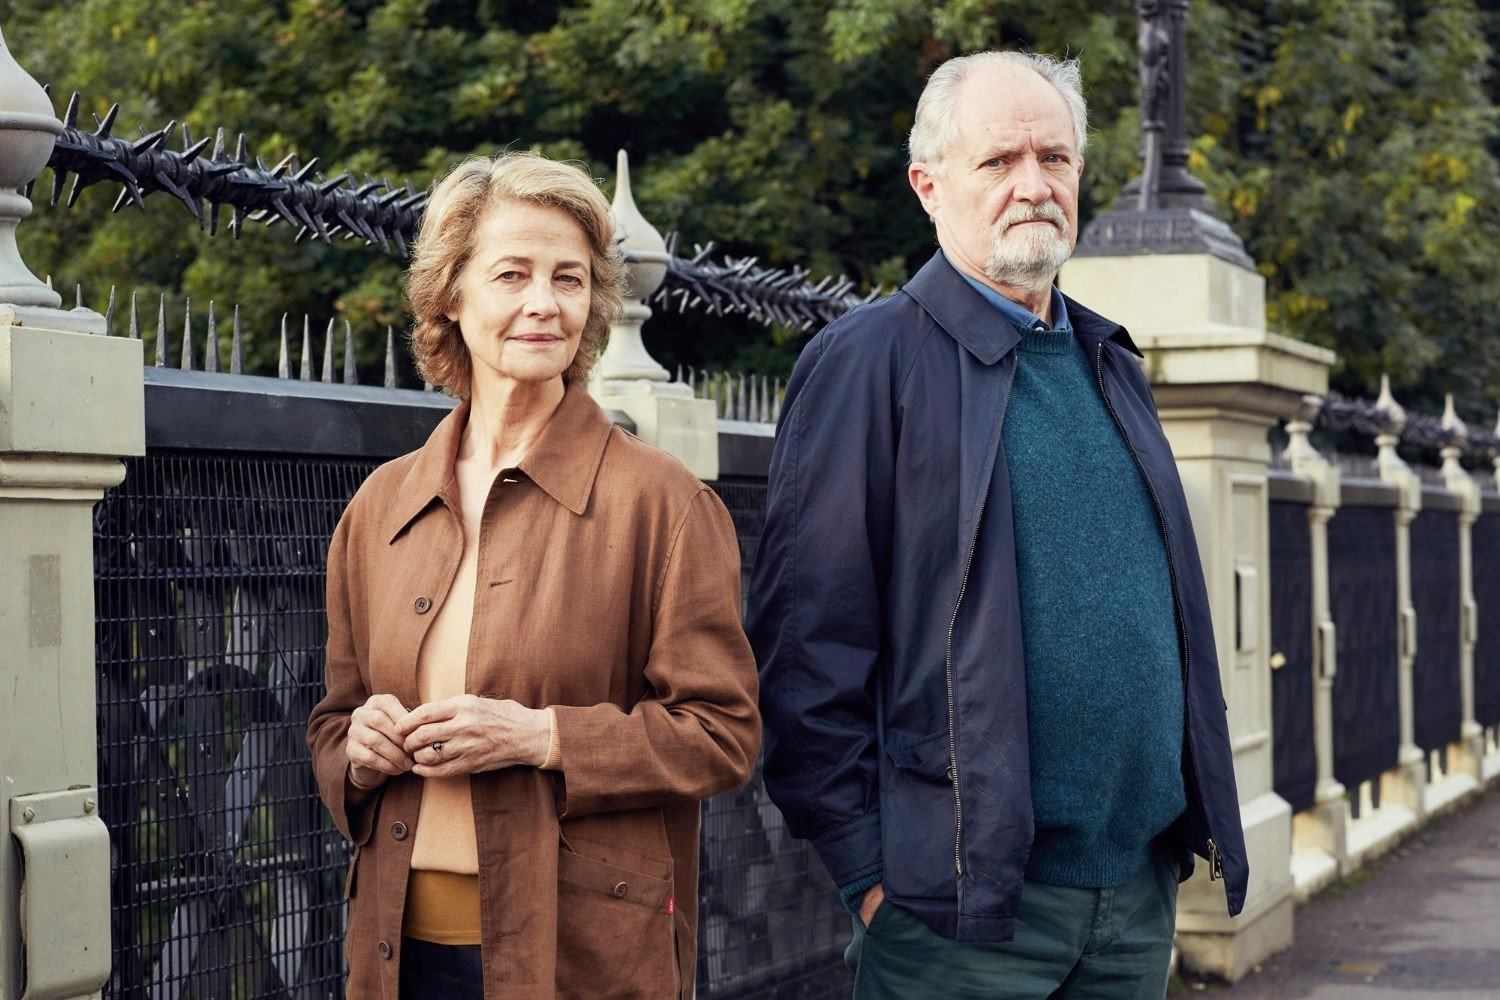 Charlotte Rampling stars as Veronica Ford and Jim Broadbent stars as Tony Webster in CBS Films' The Sense of an Ending (2017)